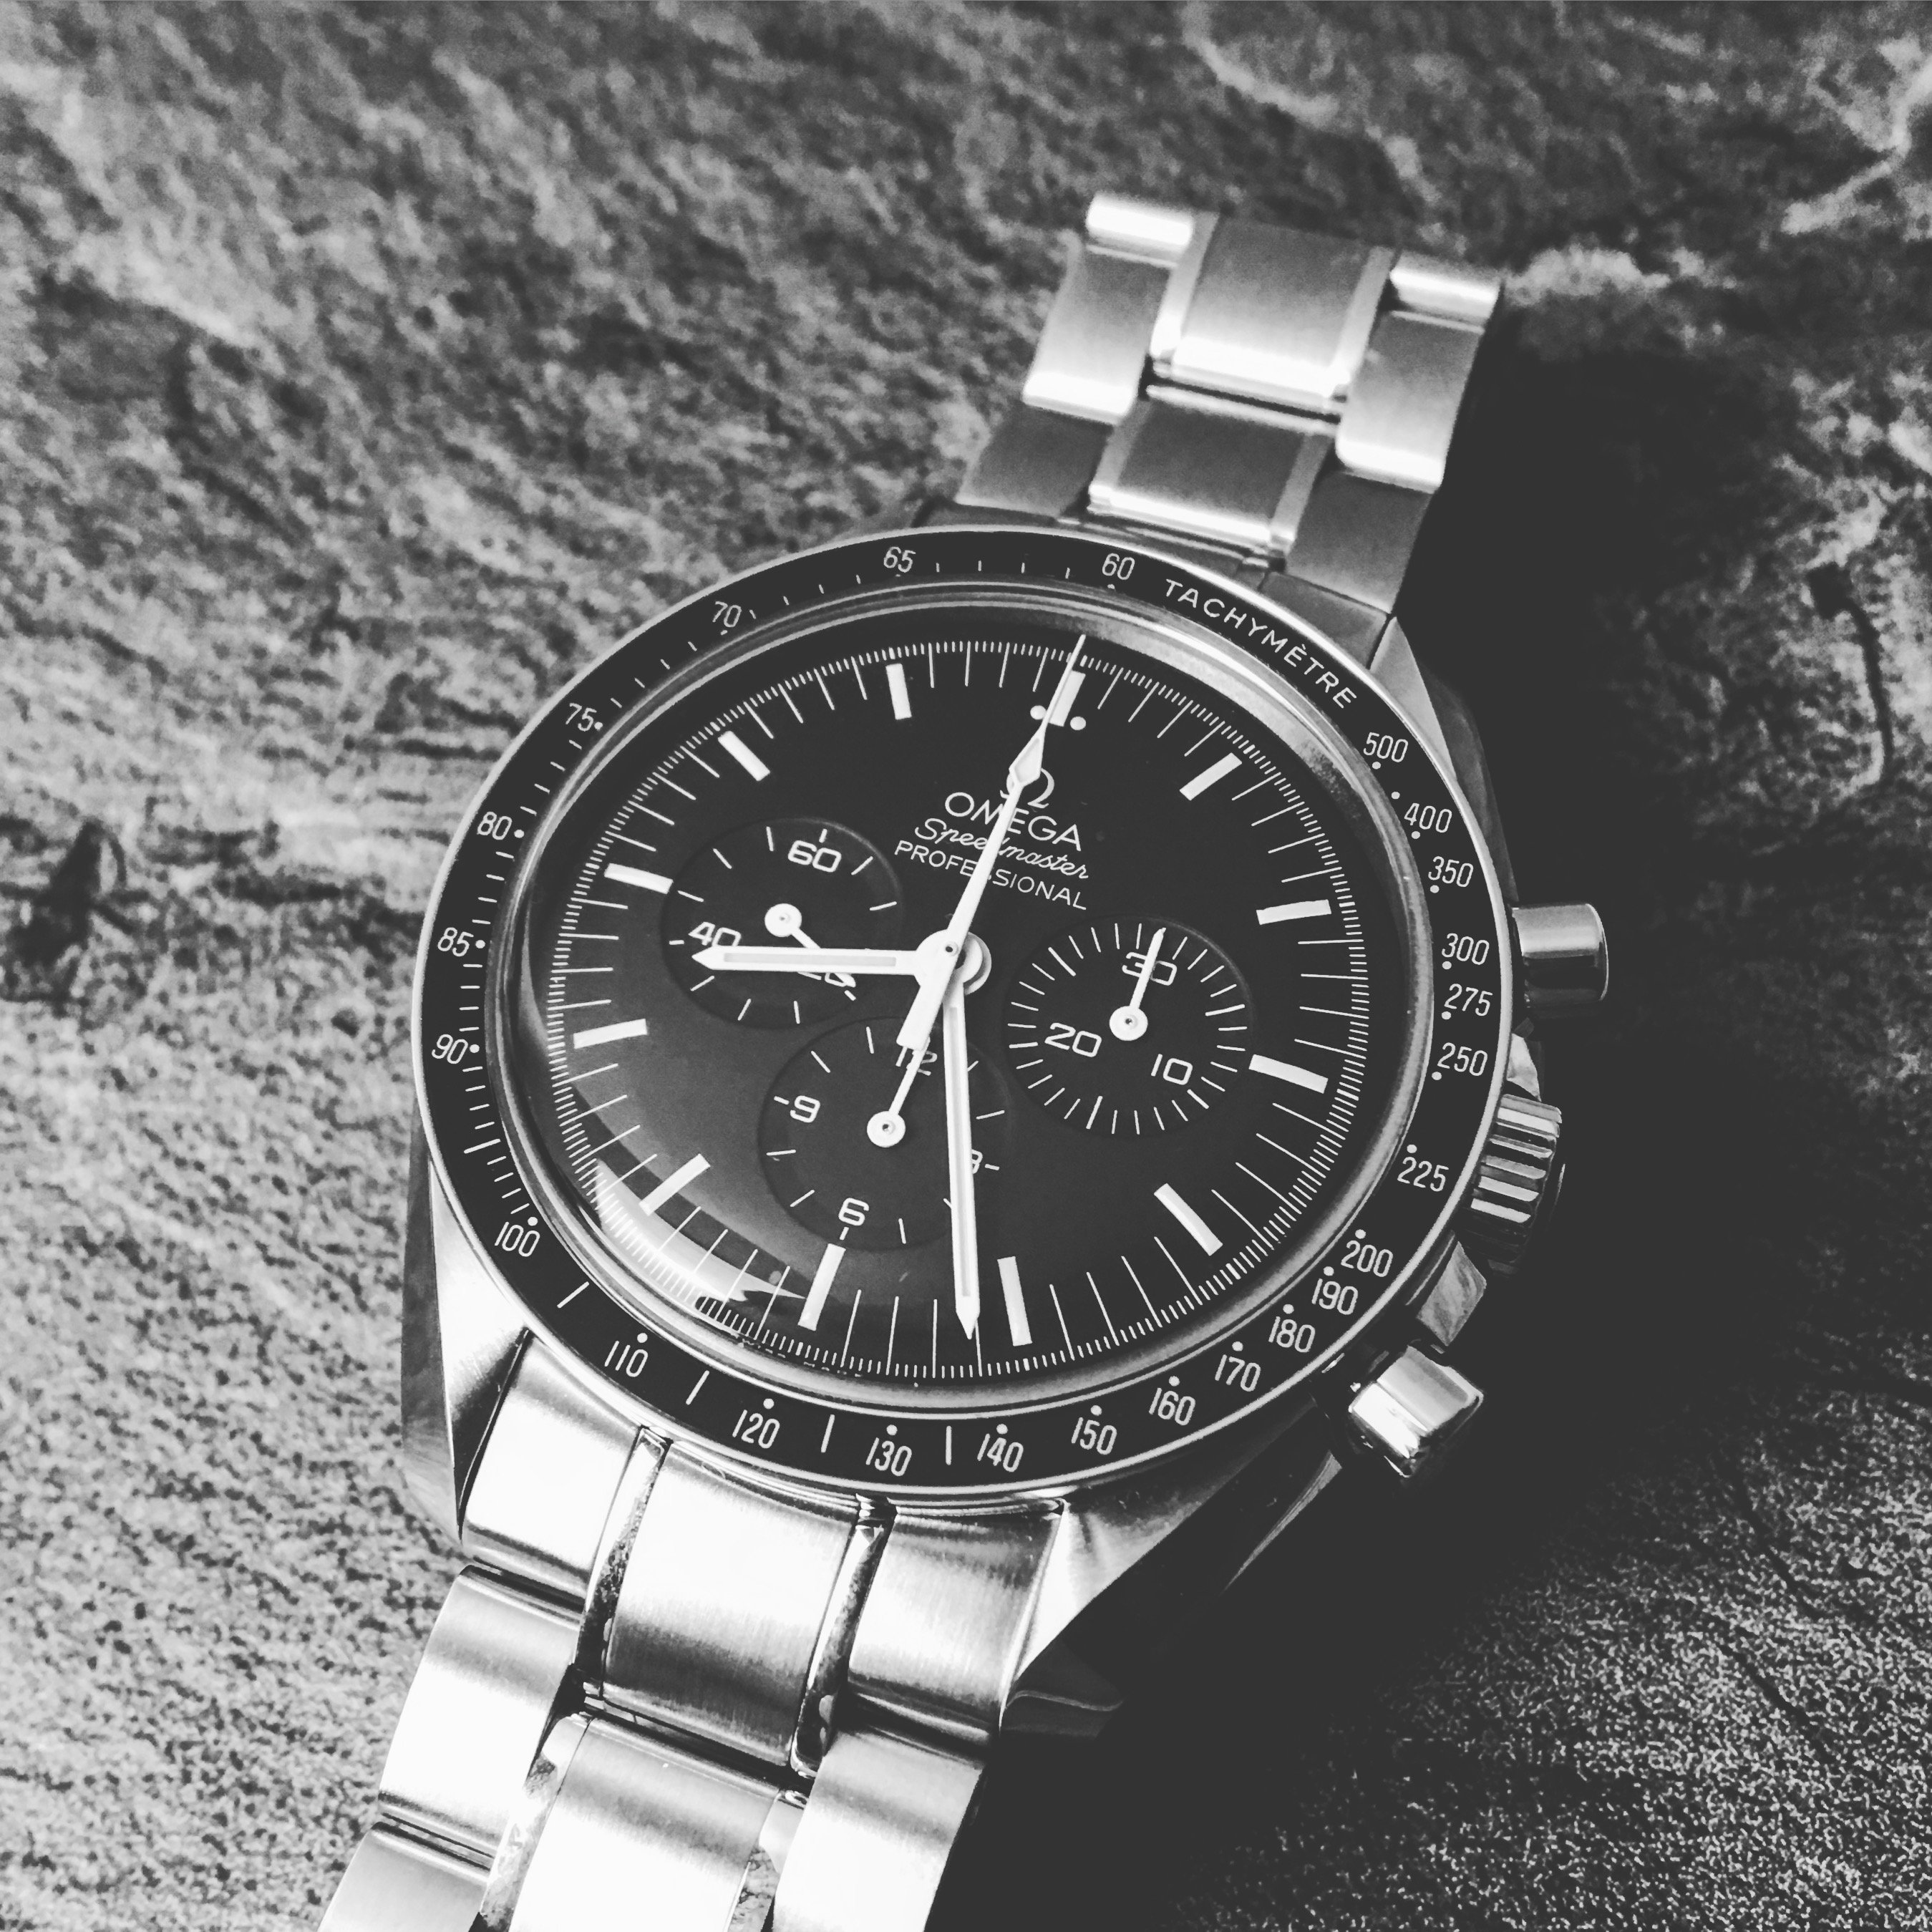 Omega Speedmaster Moonwatch Silver Snoopy Award